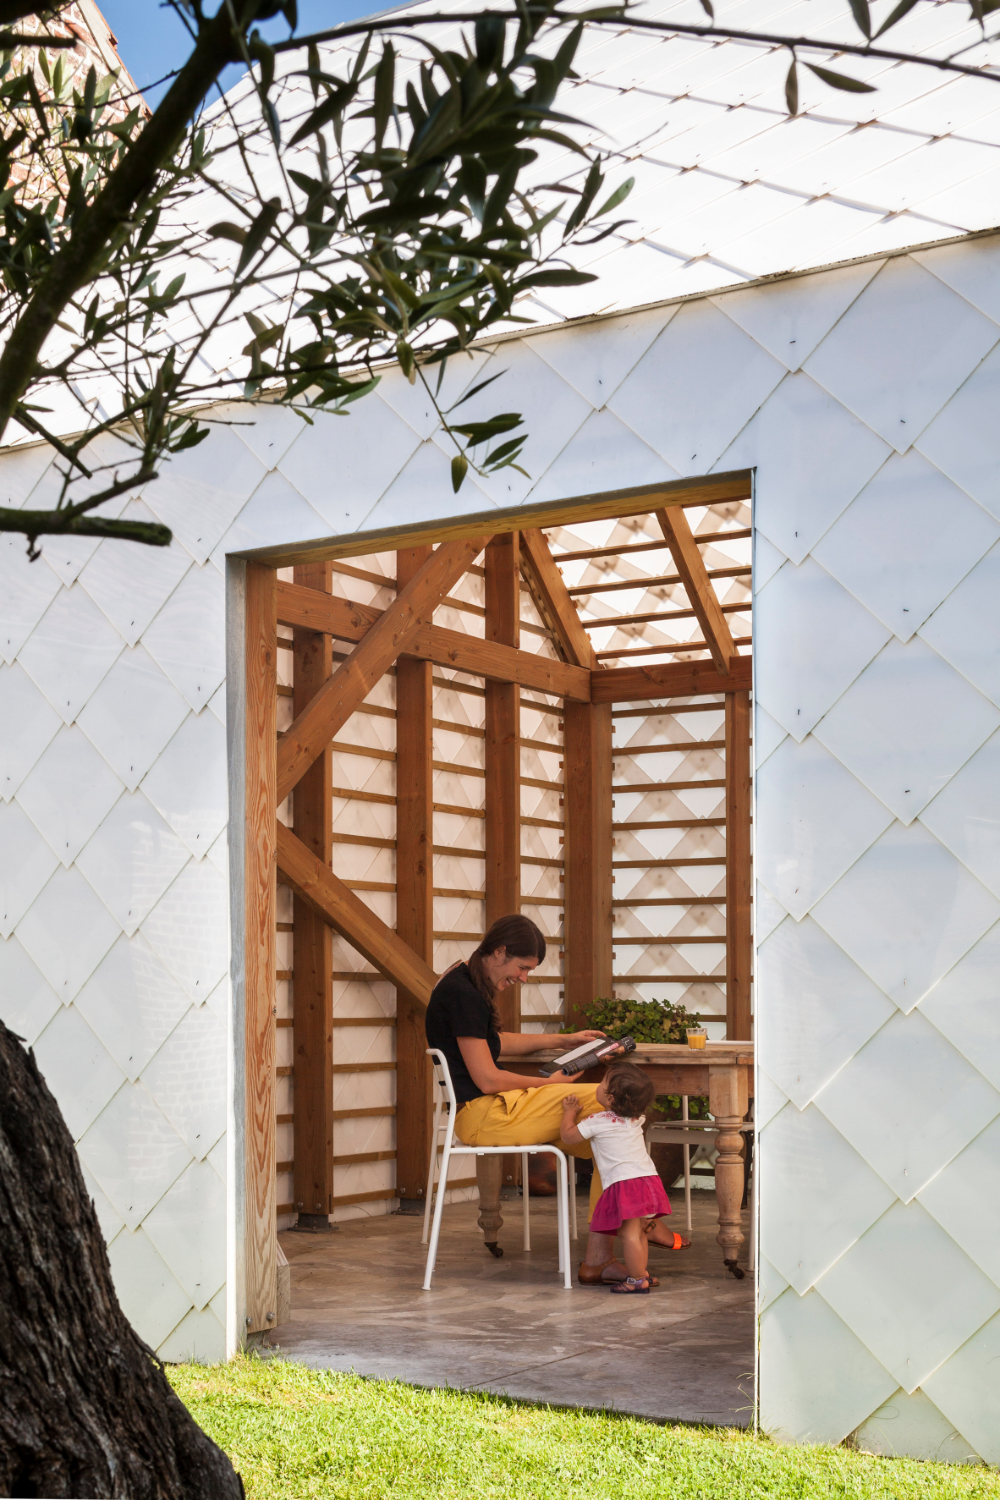 Garden Room By Indra Janda Features Translucent White Walls In 2020 Garden Room Architecture Details Architectural Inspiration